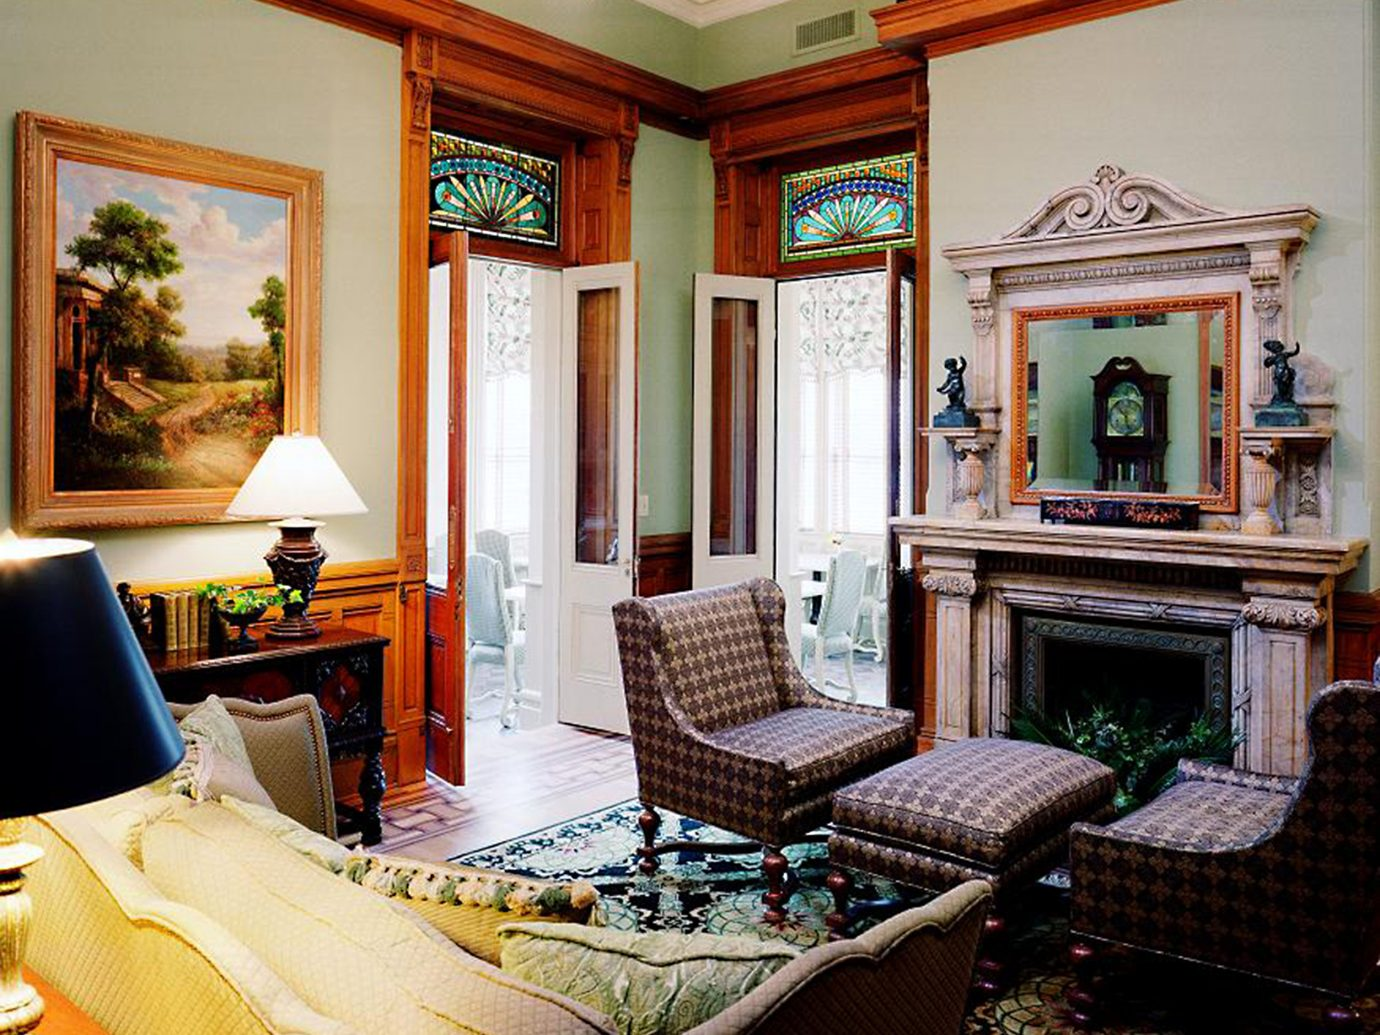 Historic Hotels Living Lounge Rustic indoor room wall living room floor property estate home window house mansion furniture interior design real estate Villa Suite decorated cottage area several